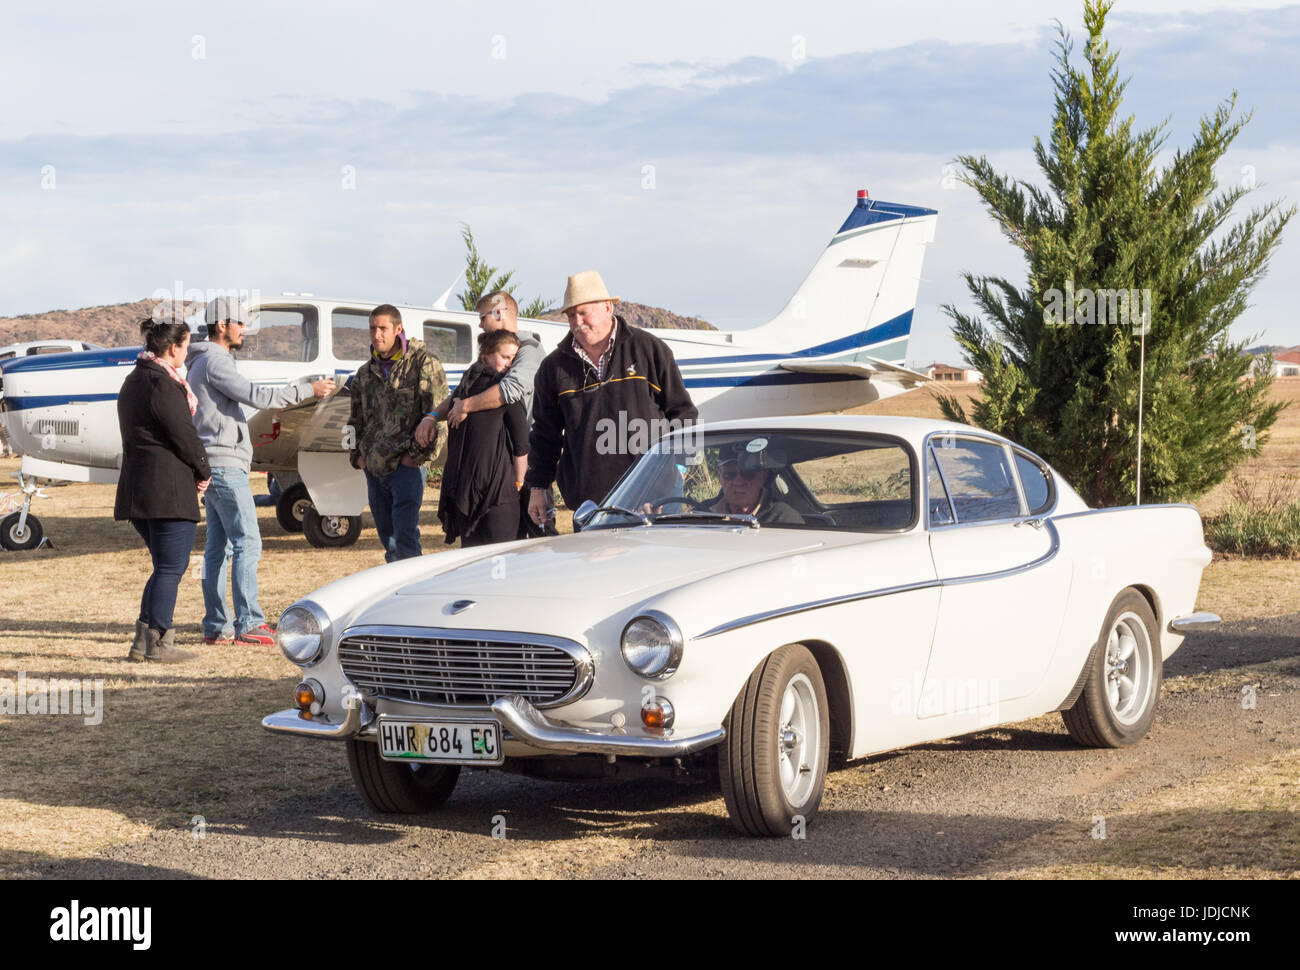 QUEENSTOWN, SOUTH AFRICA - 17 June 2017: Vintage Volvo P1800 car being driven as part of a display at an air exhibition - Stock Image